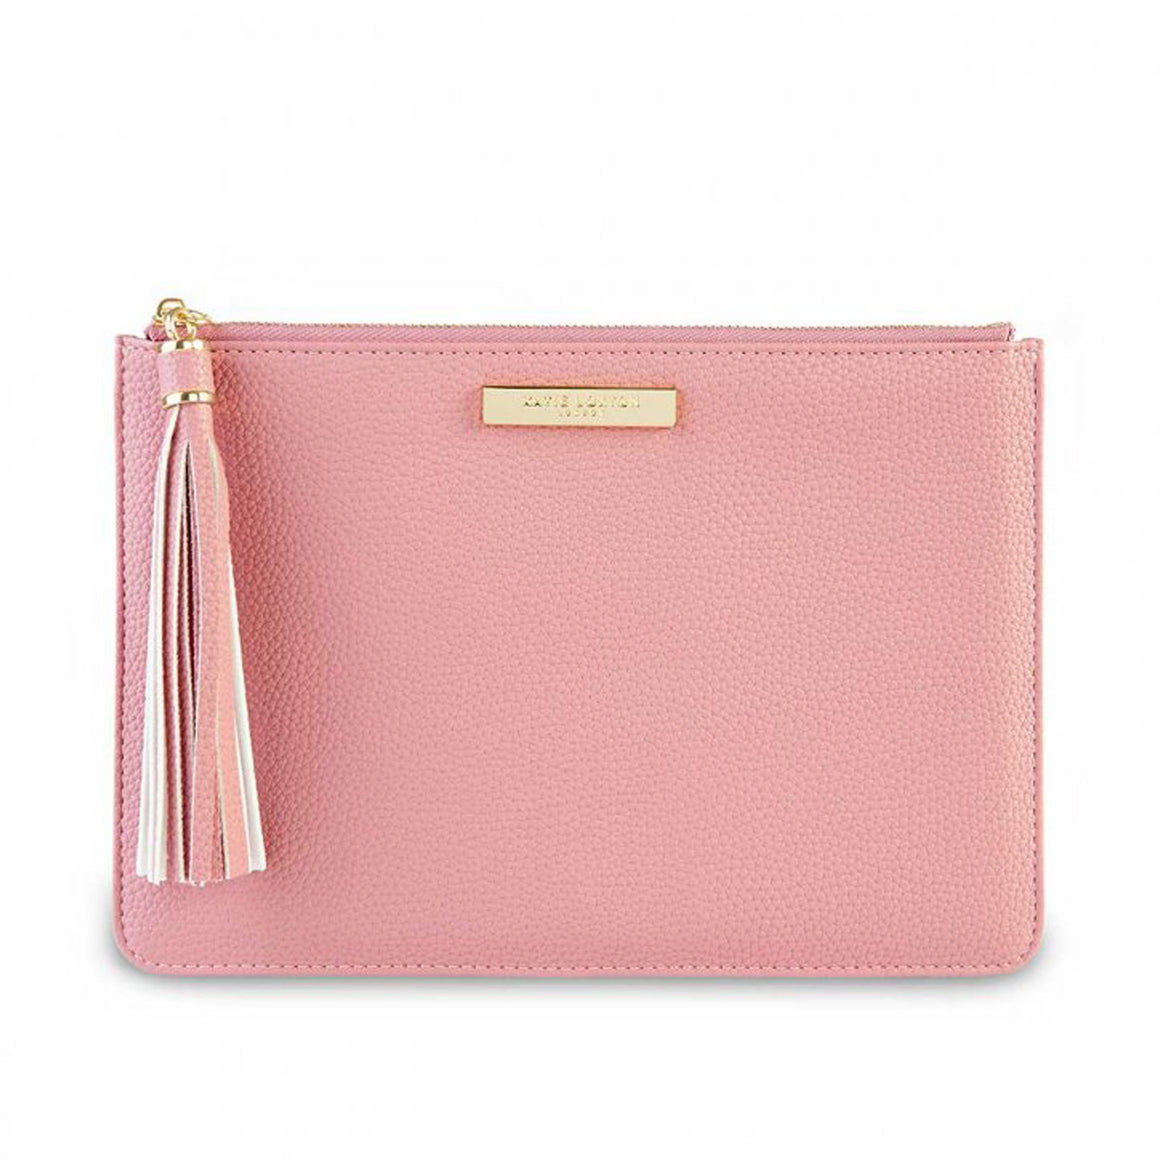 Tassel Pouch for Women in Pink